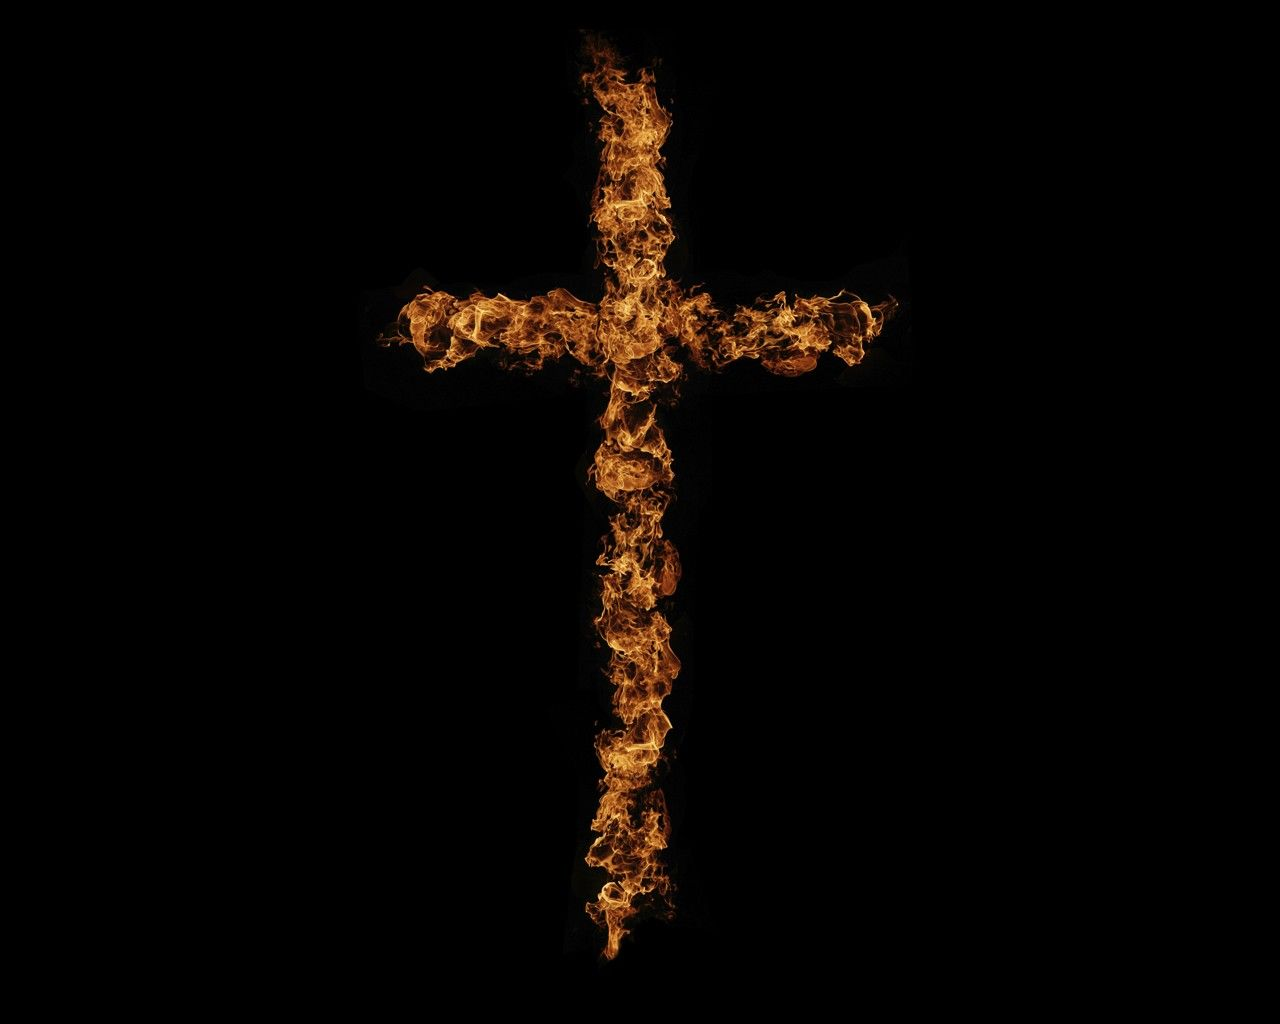 Cross of Fire Wallpaper   Christian Wallpapers and Backgrounds 1280x1024